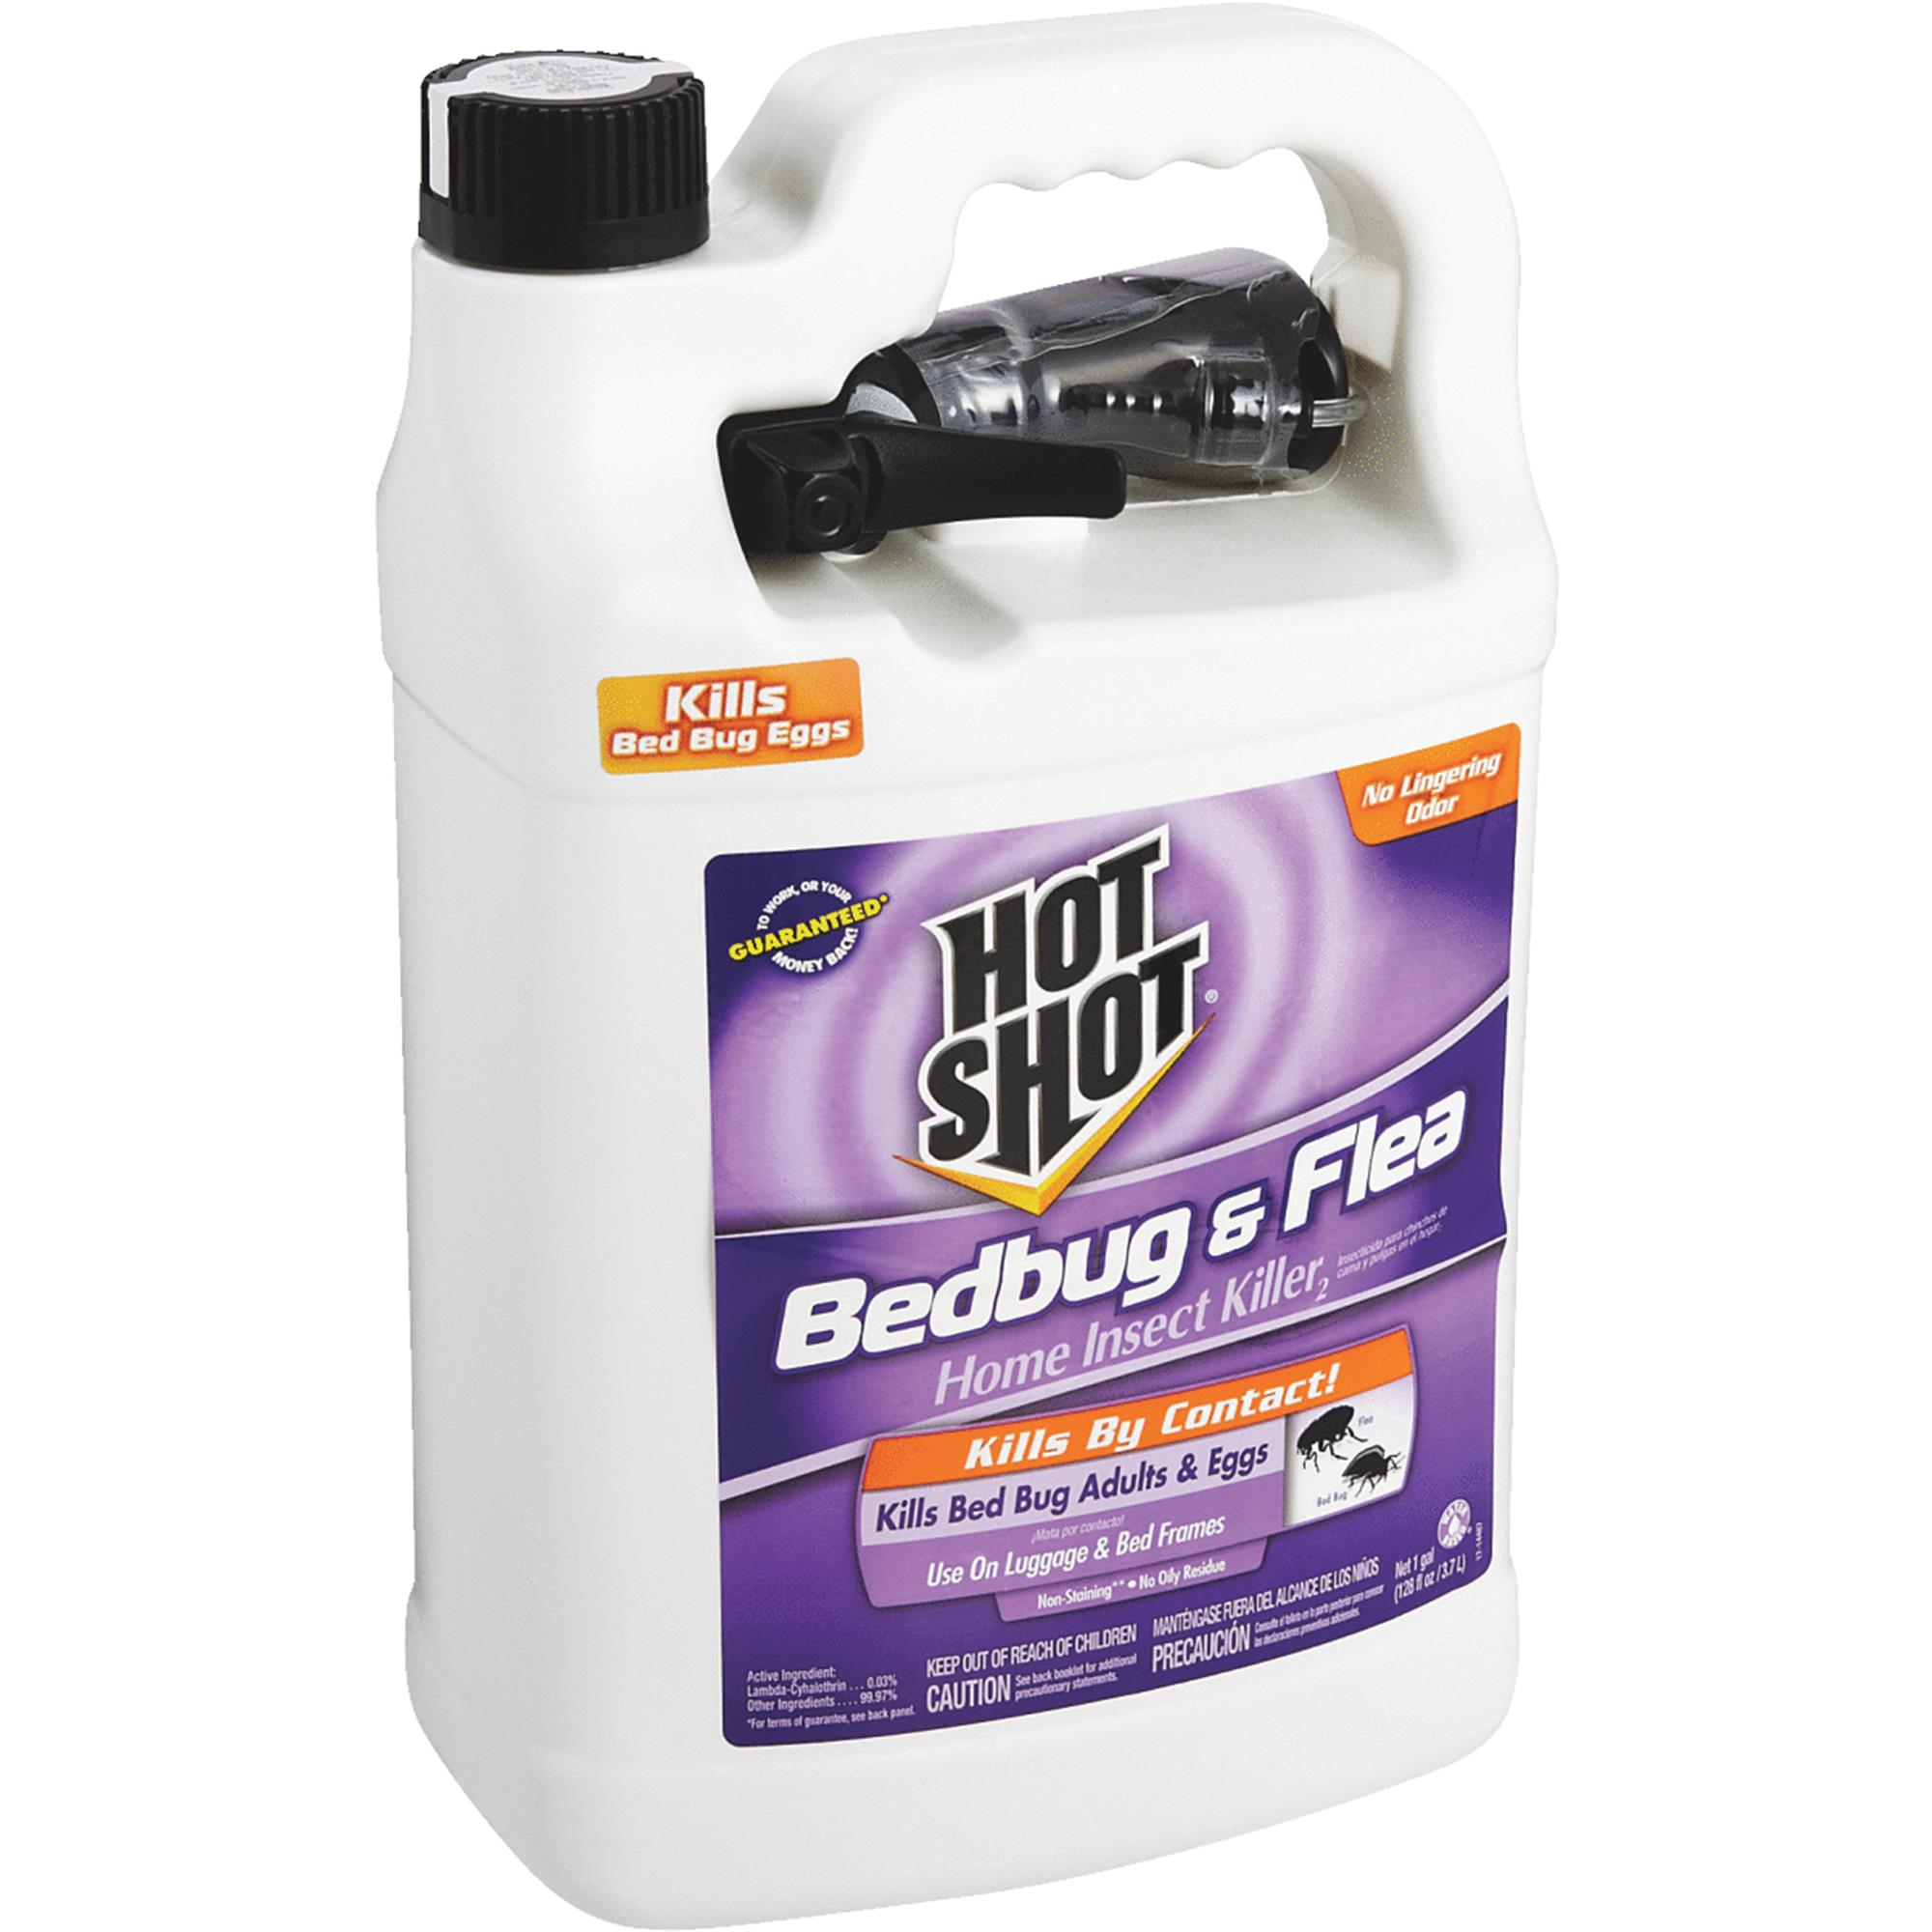 Hot Shot Bed Bug & Flea Home Insect Killer, Ready-to-Use, 1-gal